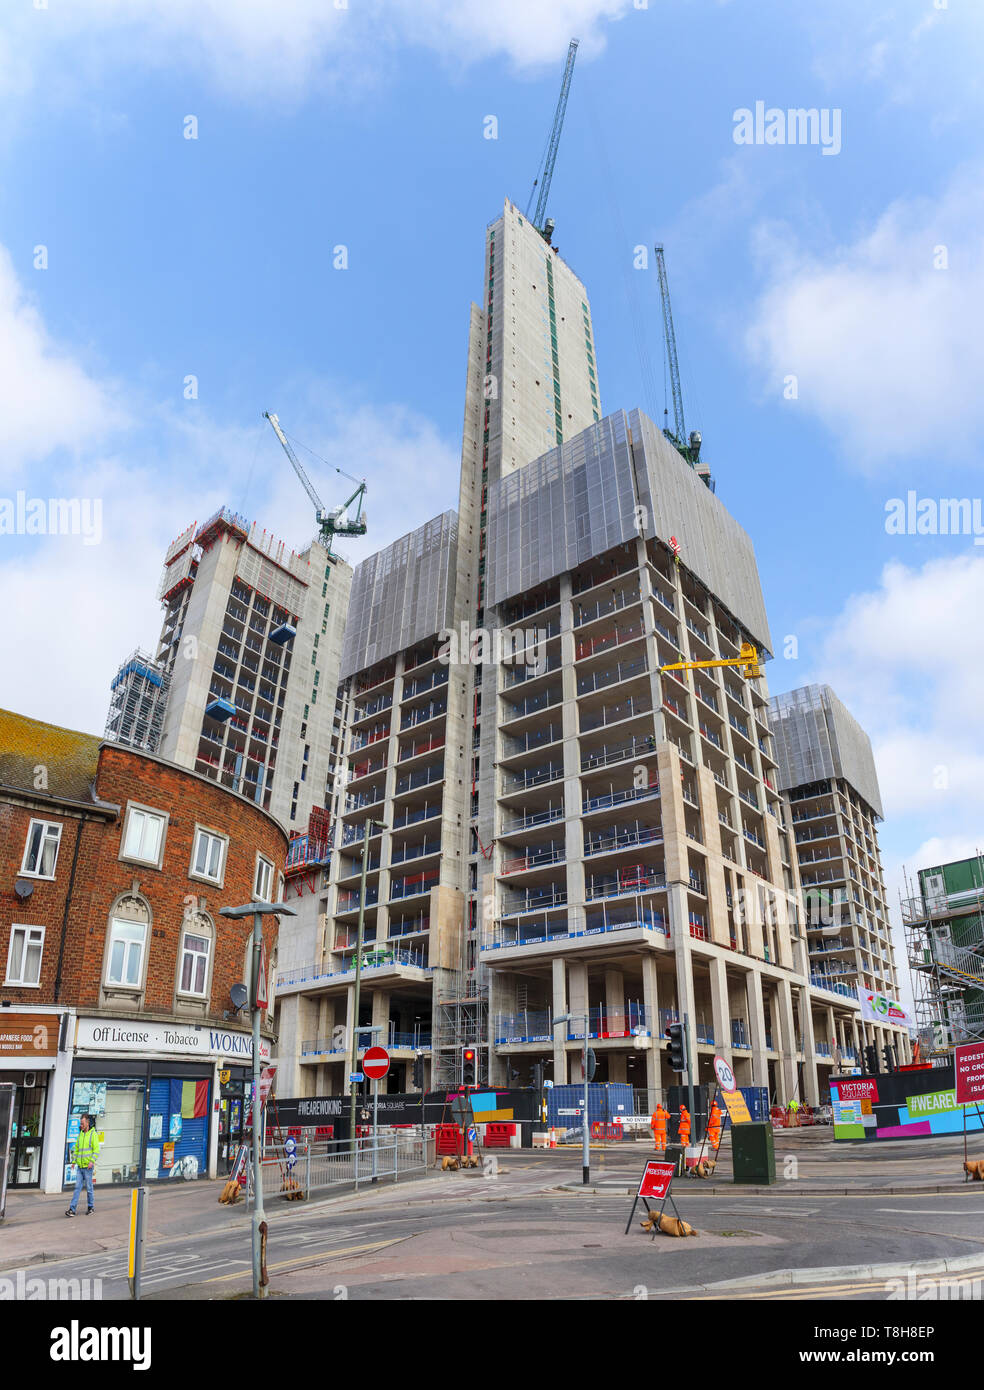 Woking, Surrey: construction of the new high rise mixed use Victoria Square development continues with concrete cores and tower cranes - Stock Image